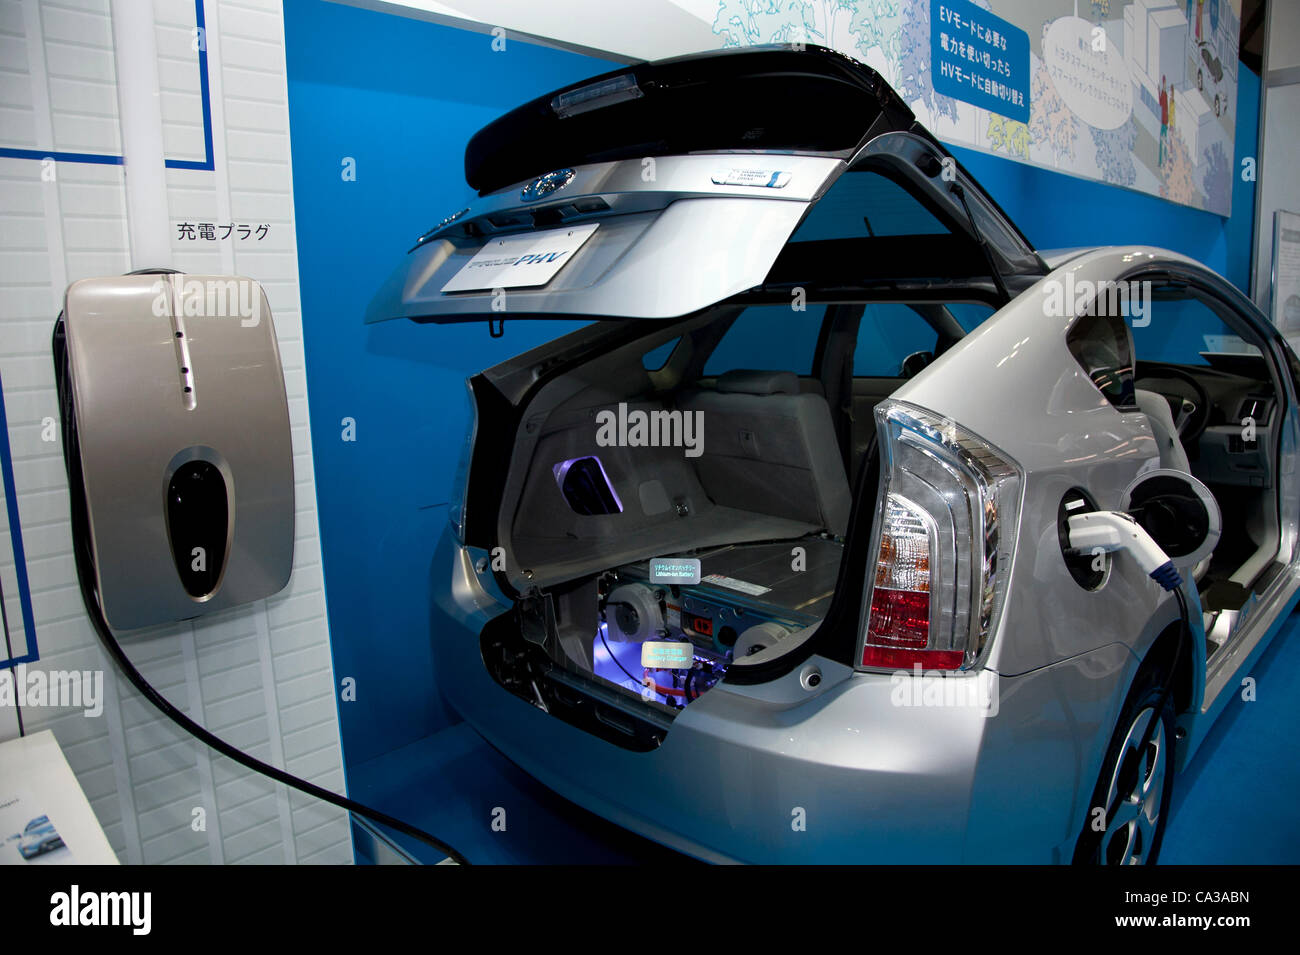 May 131, 2012, Tokyo, Japan - A electric car charging. The Smart ...